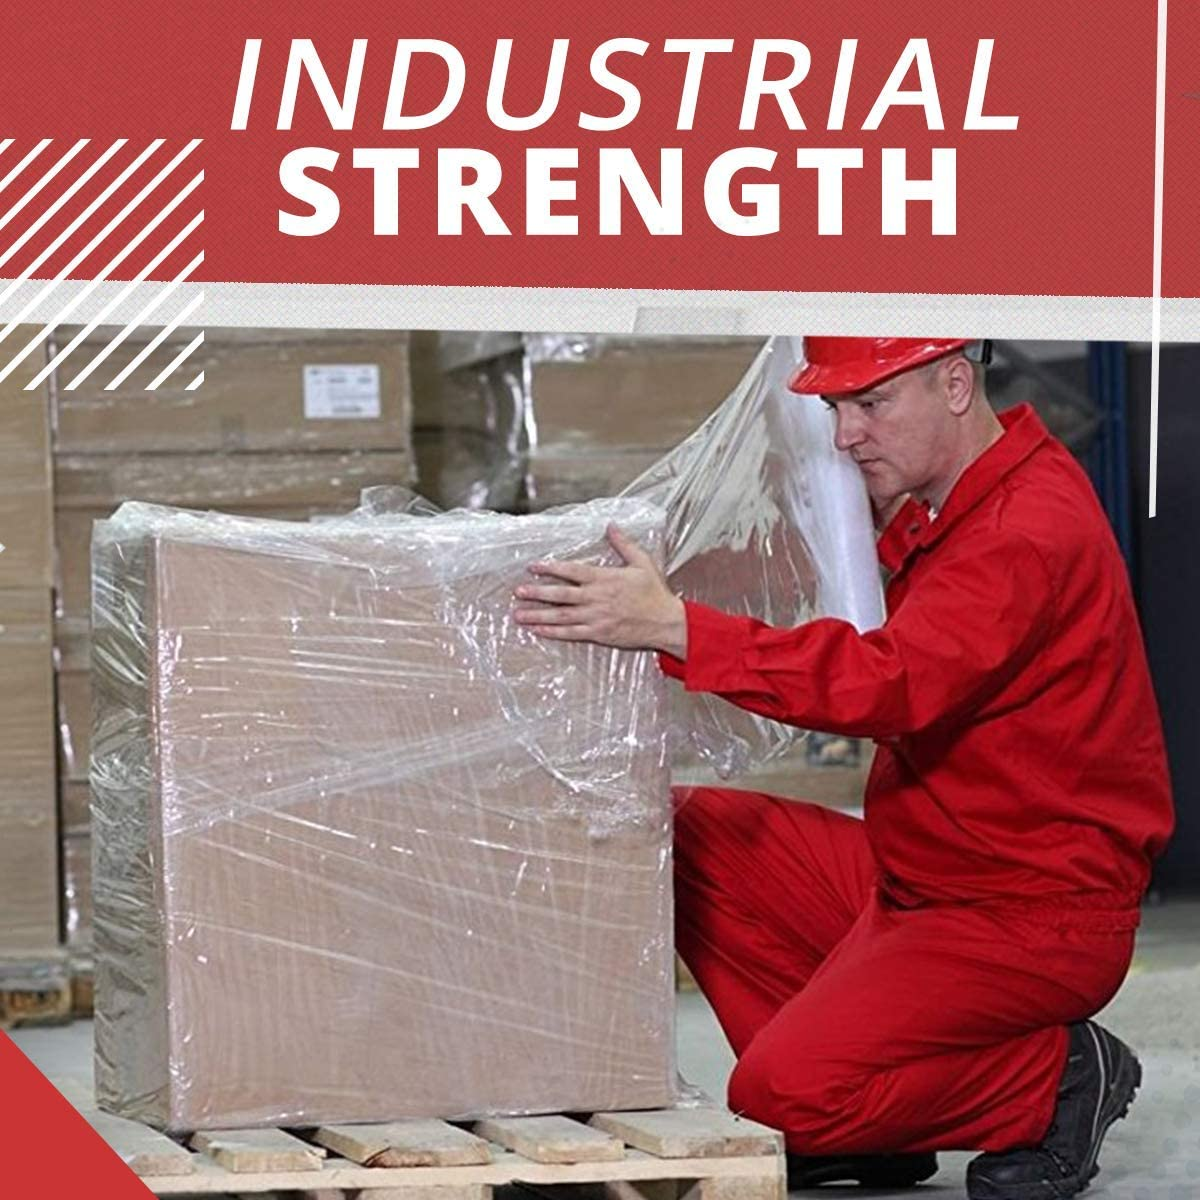 Self-Adhering Packing  Moving  Heavy Duty Shrink Film Roll Clear 1 Pack 2 Core Stretch Wrap Industrial Strength Extra Thick 17 x 800 SqFt 80 Gauge Clear Cling Plastic Pallet Supplies